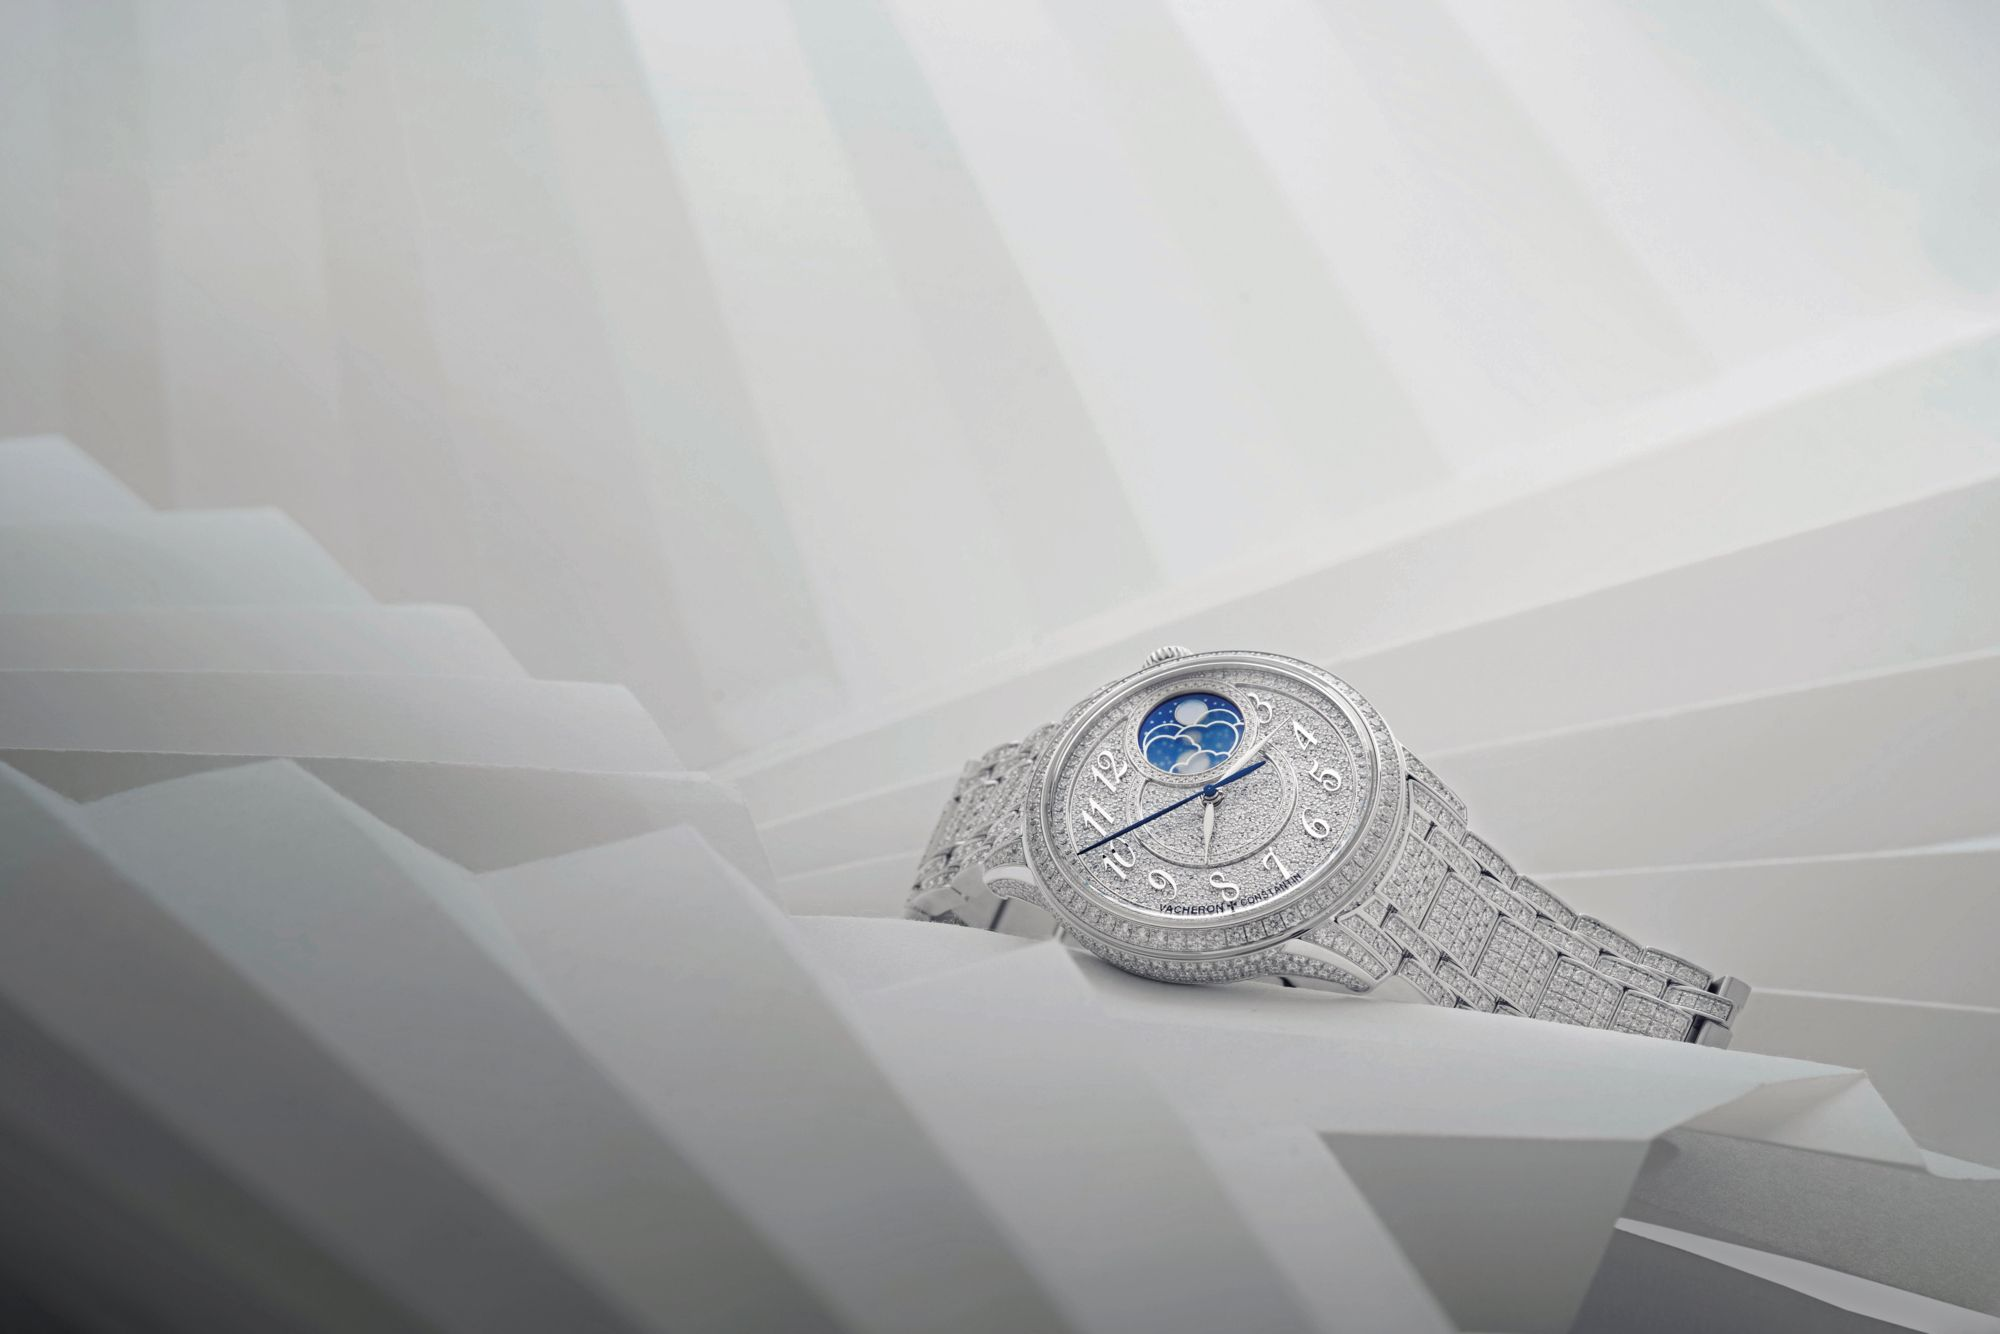 These Luxury Watchmakers Have Released Stunning Timepieces For Women